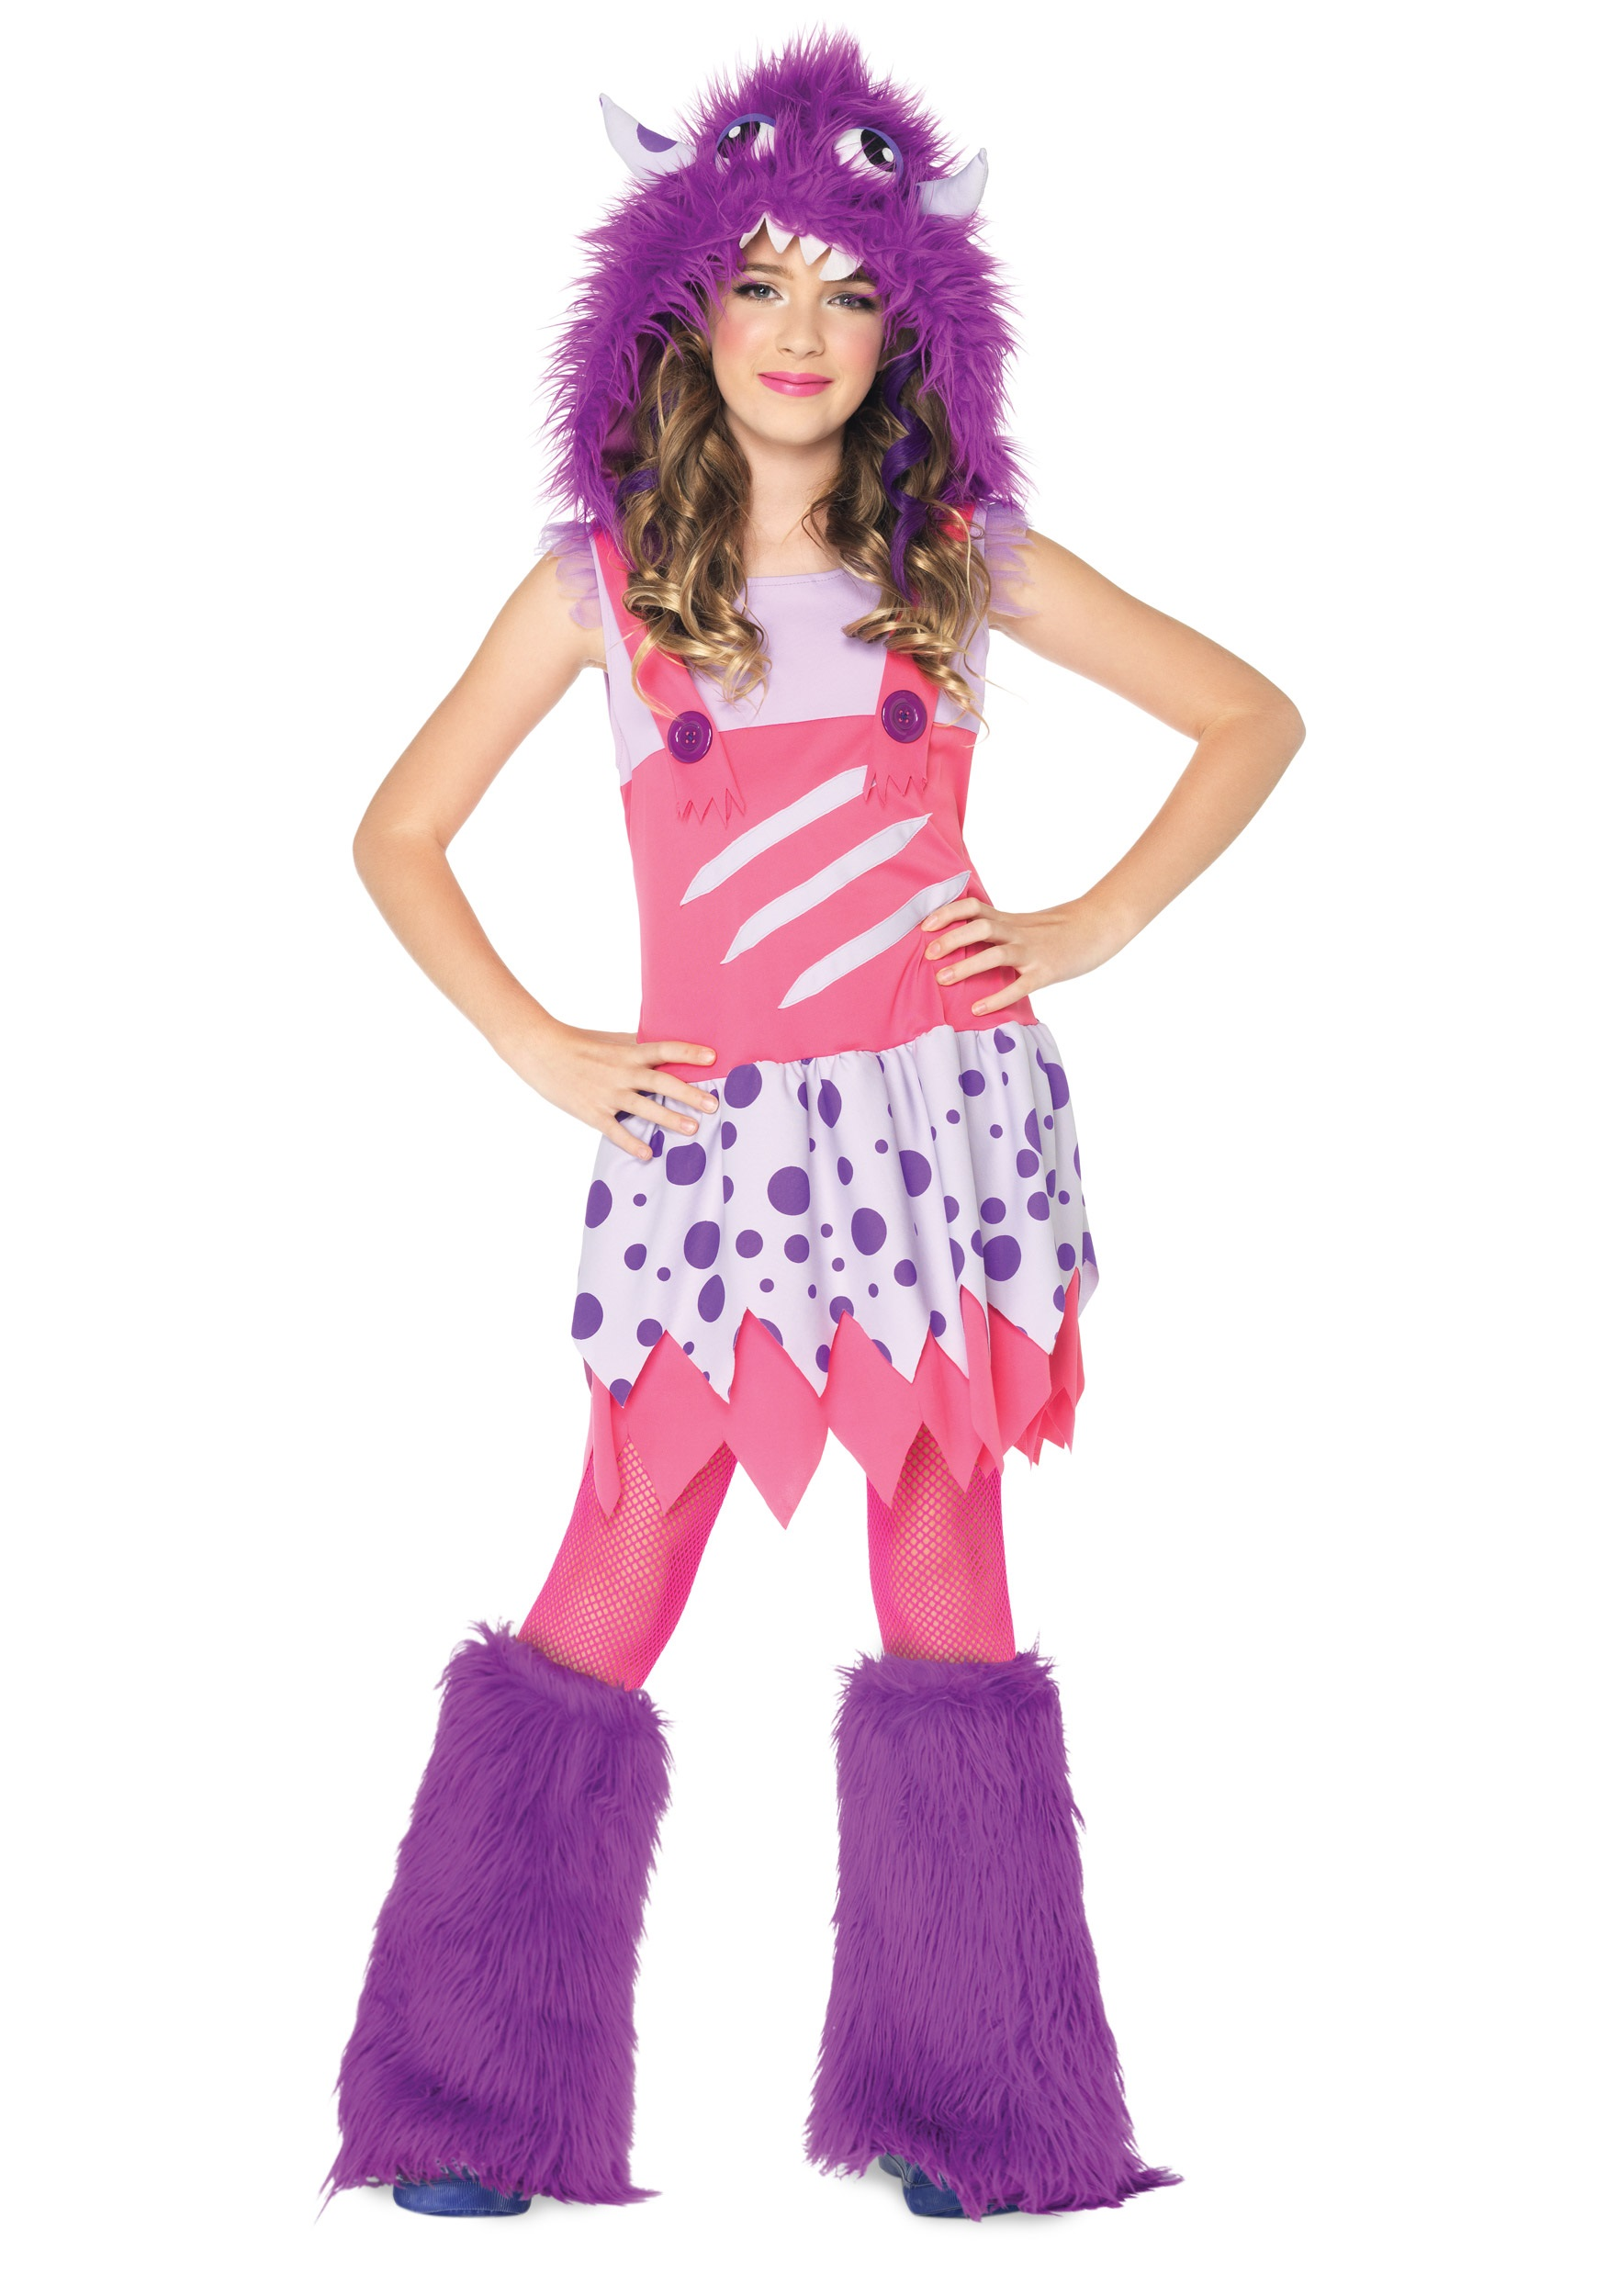 Kid halloween costume ideas tween halloween costume ideas for Children s halloween costume ideas